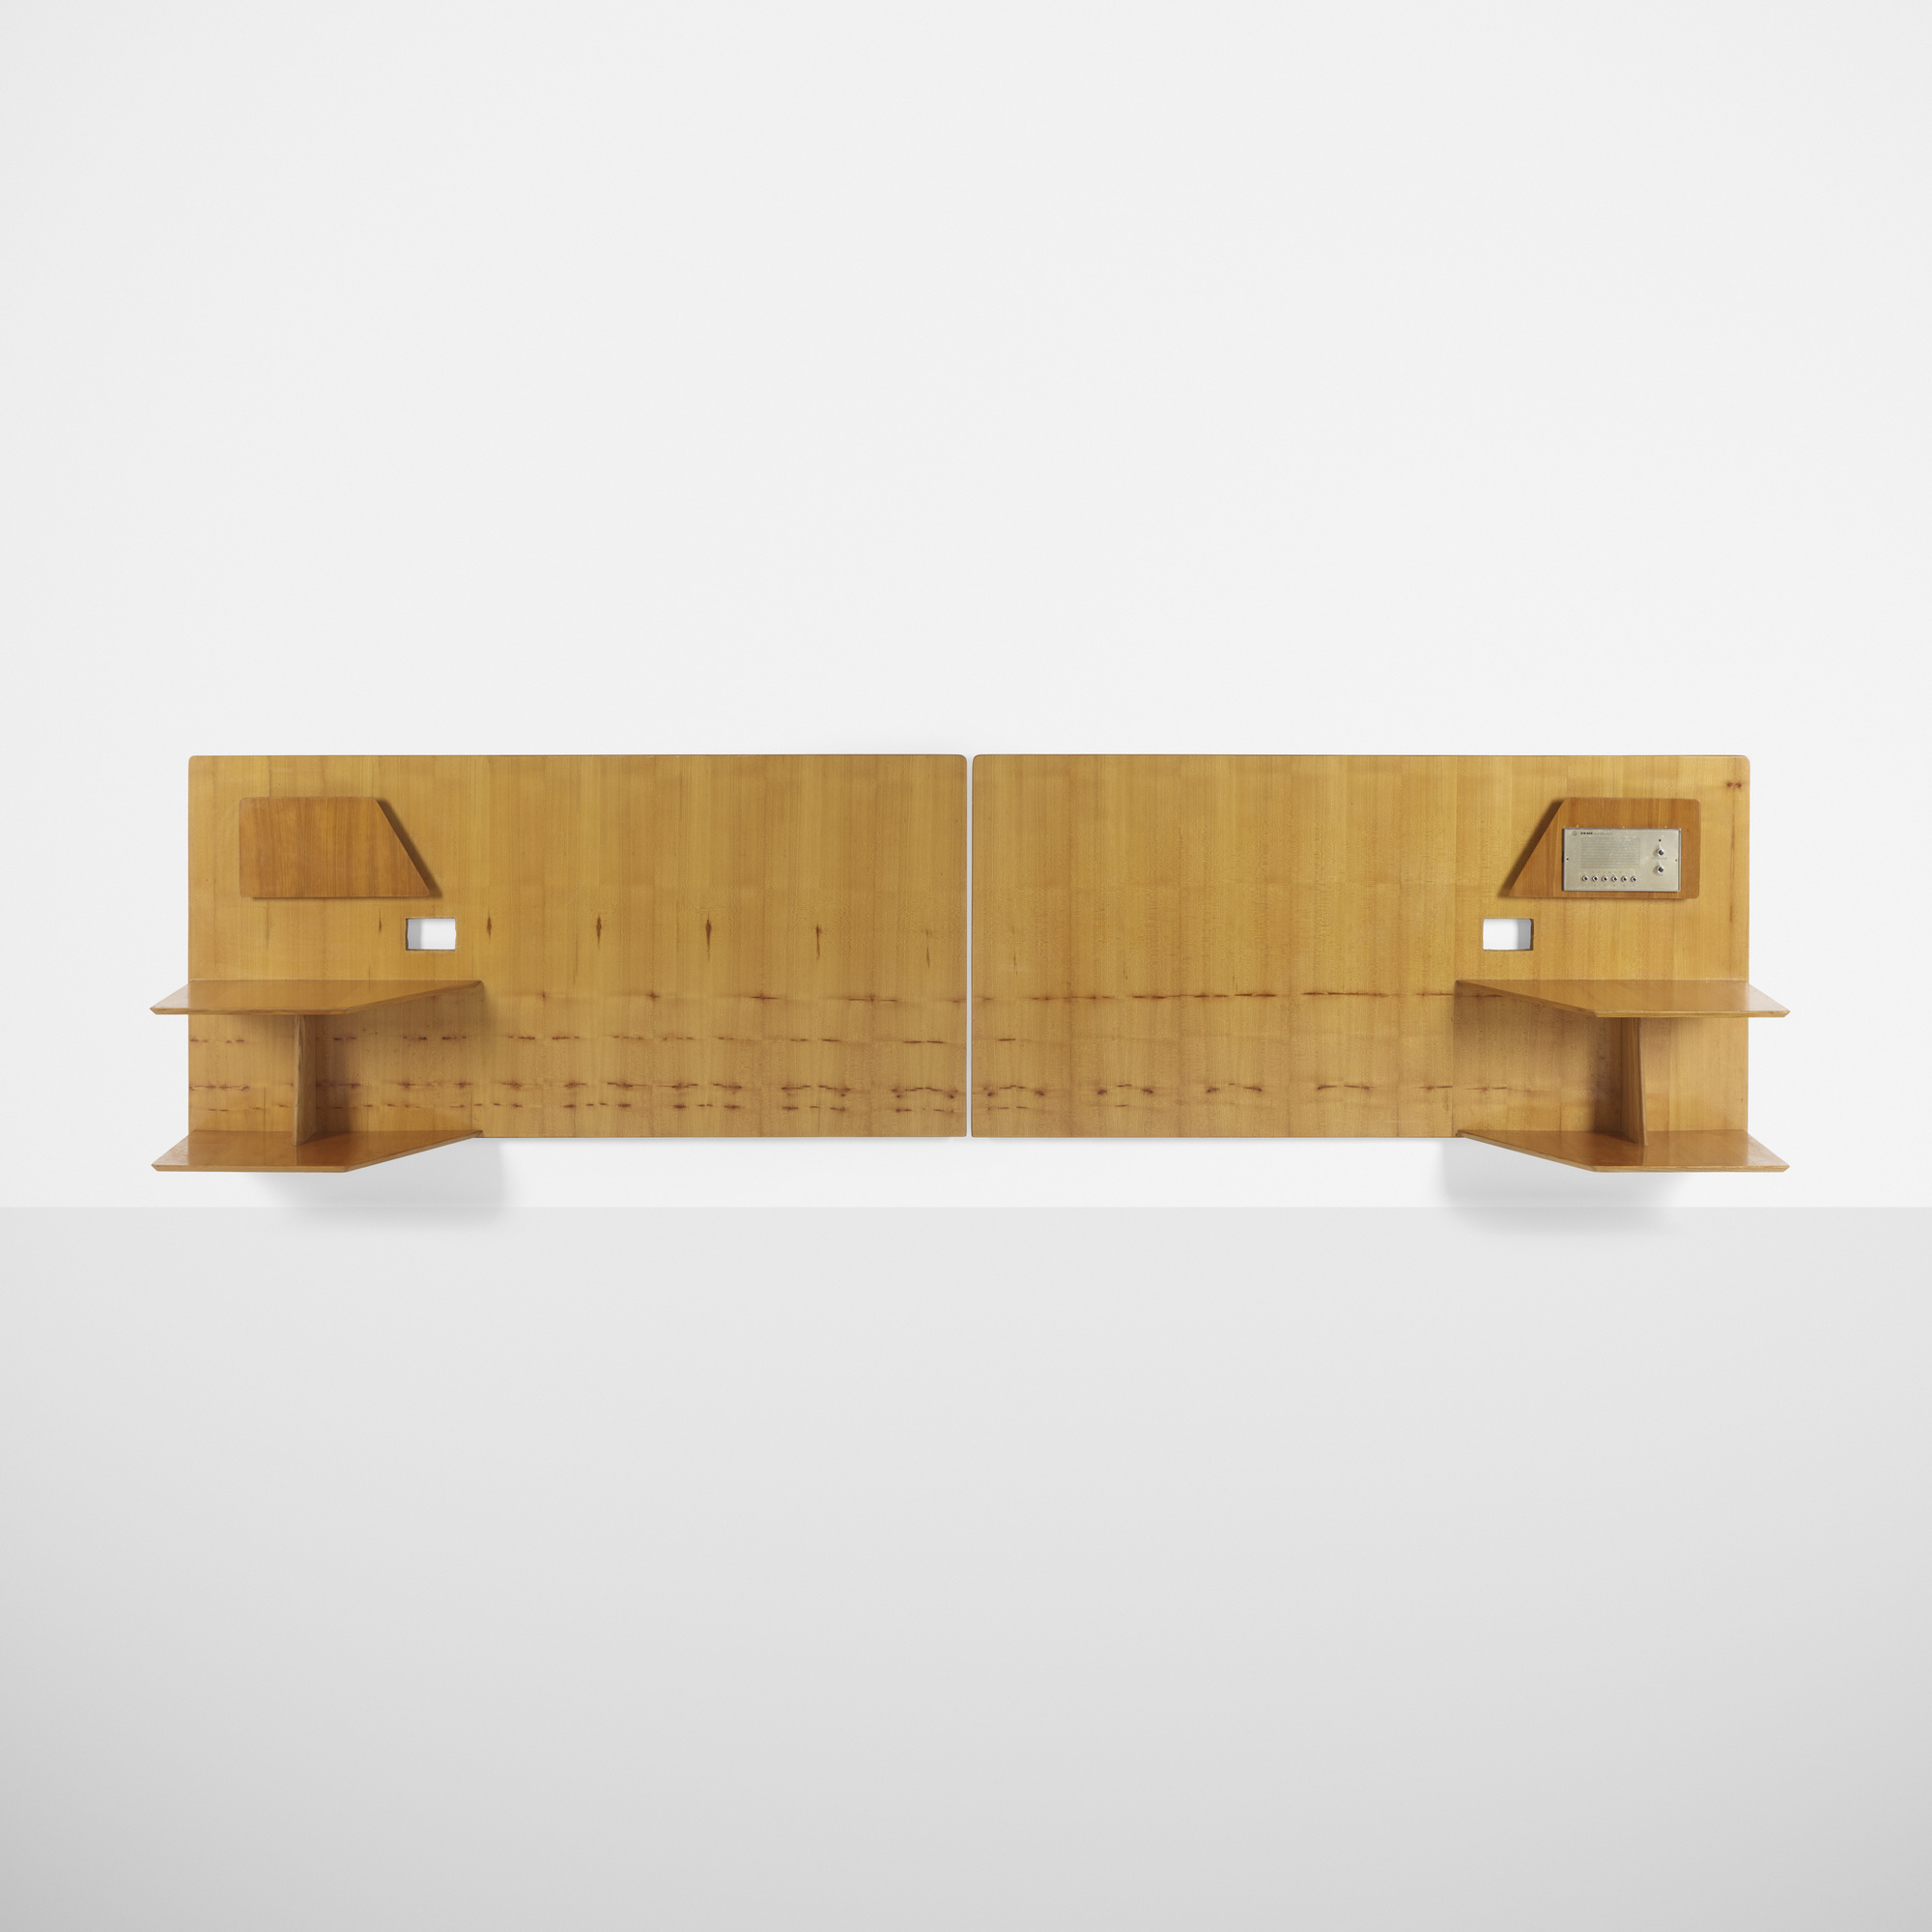 308: Gio Ponti / pair of headboards from Royal Hotel, Naples (1 of 1)